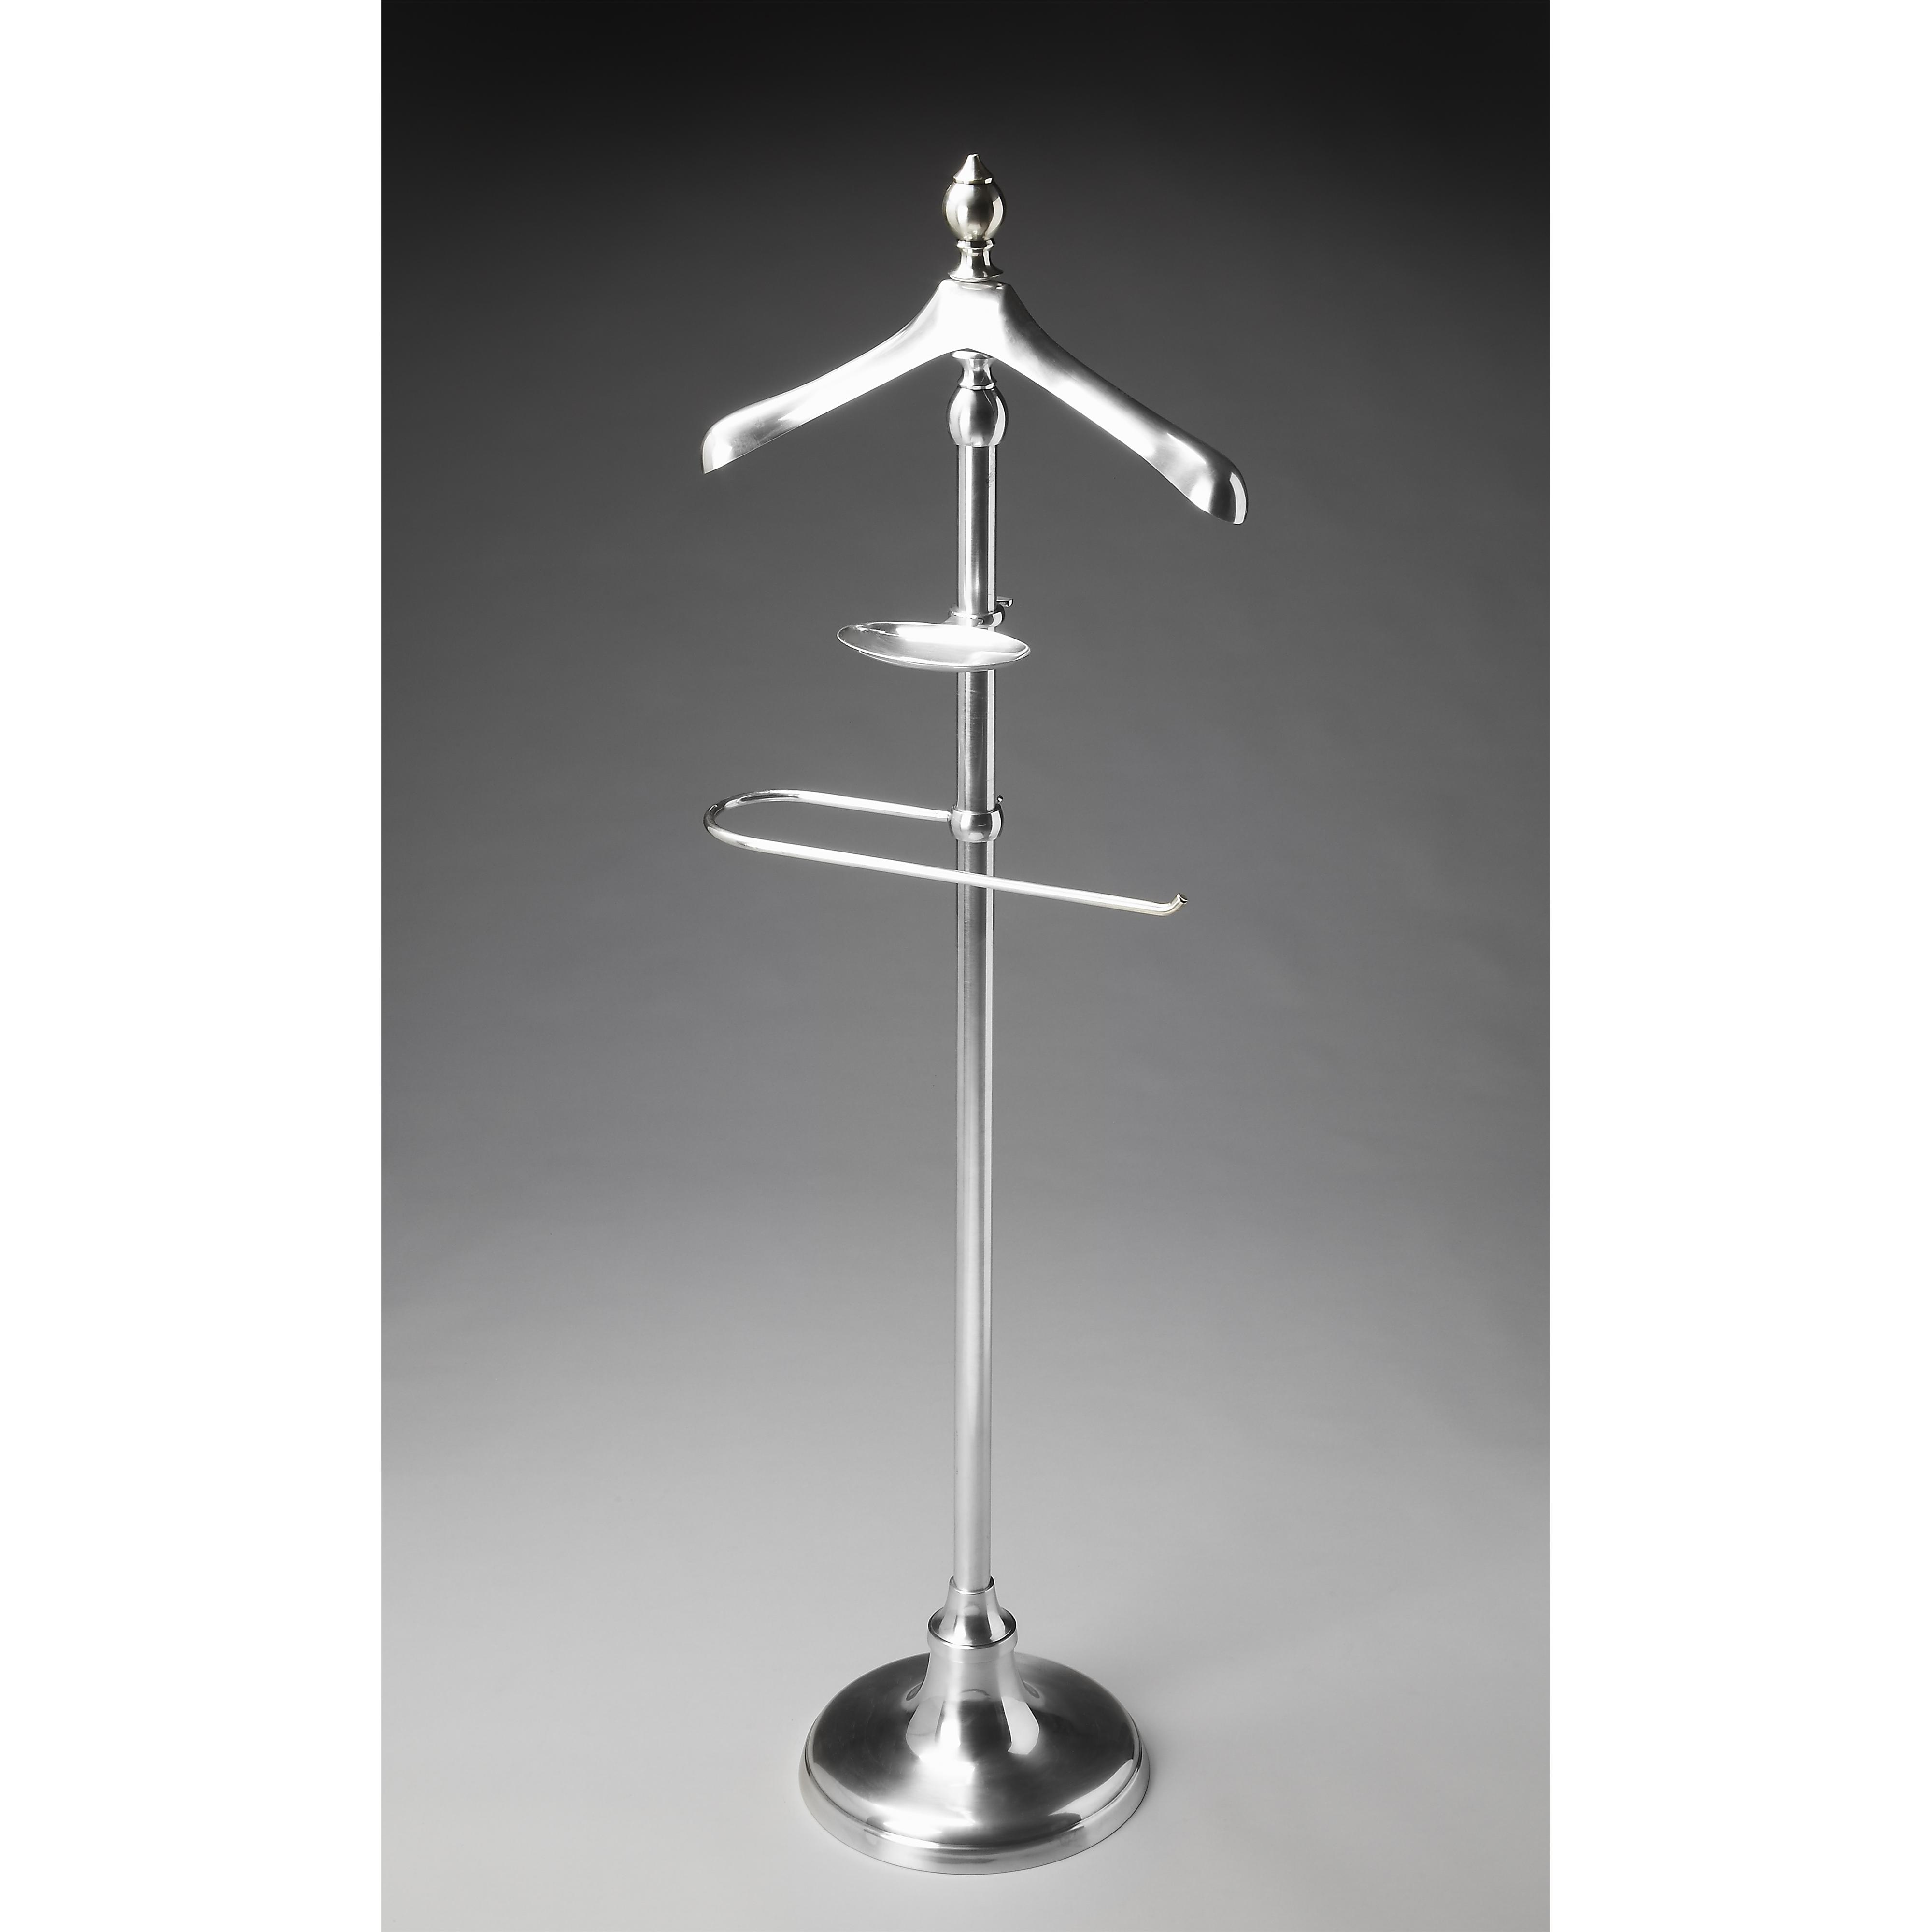 Butler Specialty Company Metalworks Valet Stand - Item Number: 2363025